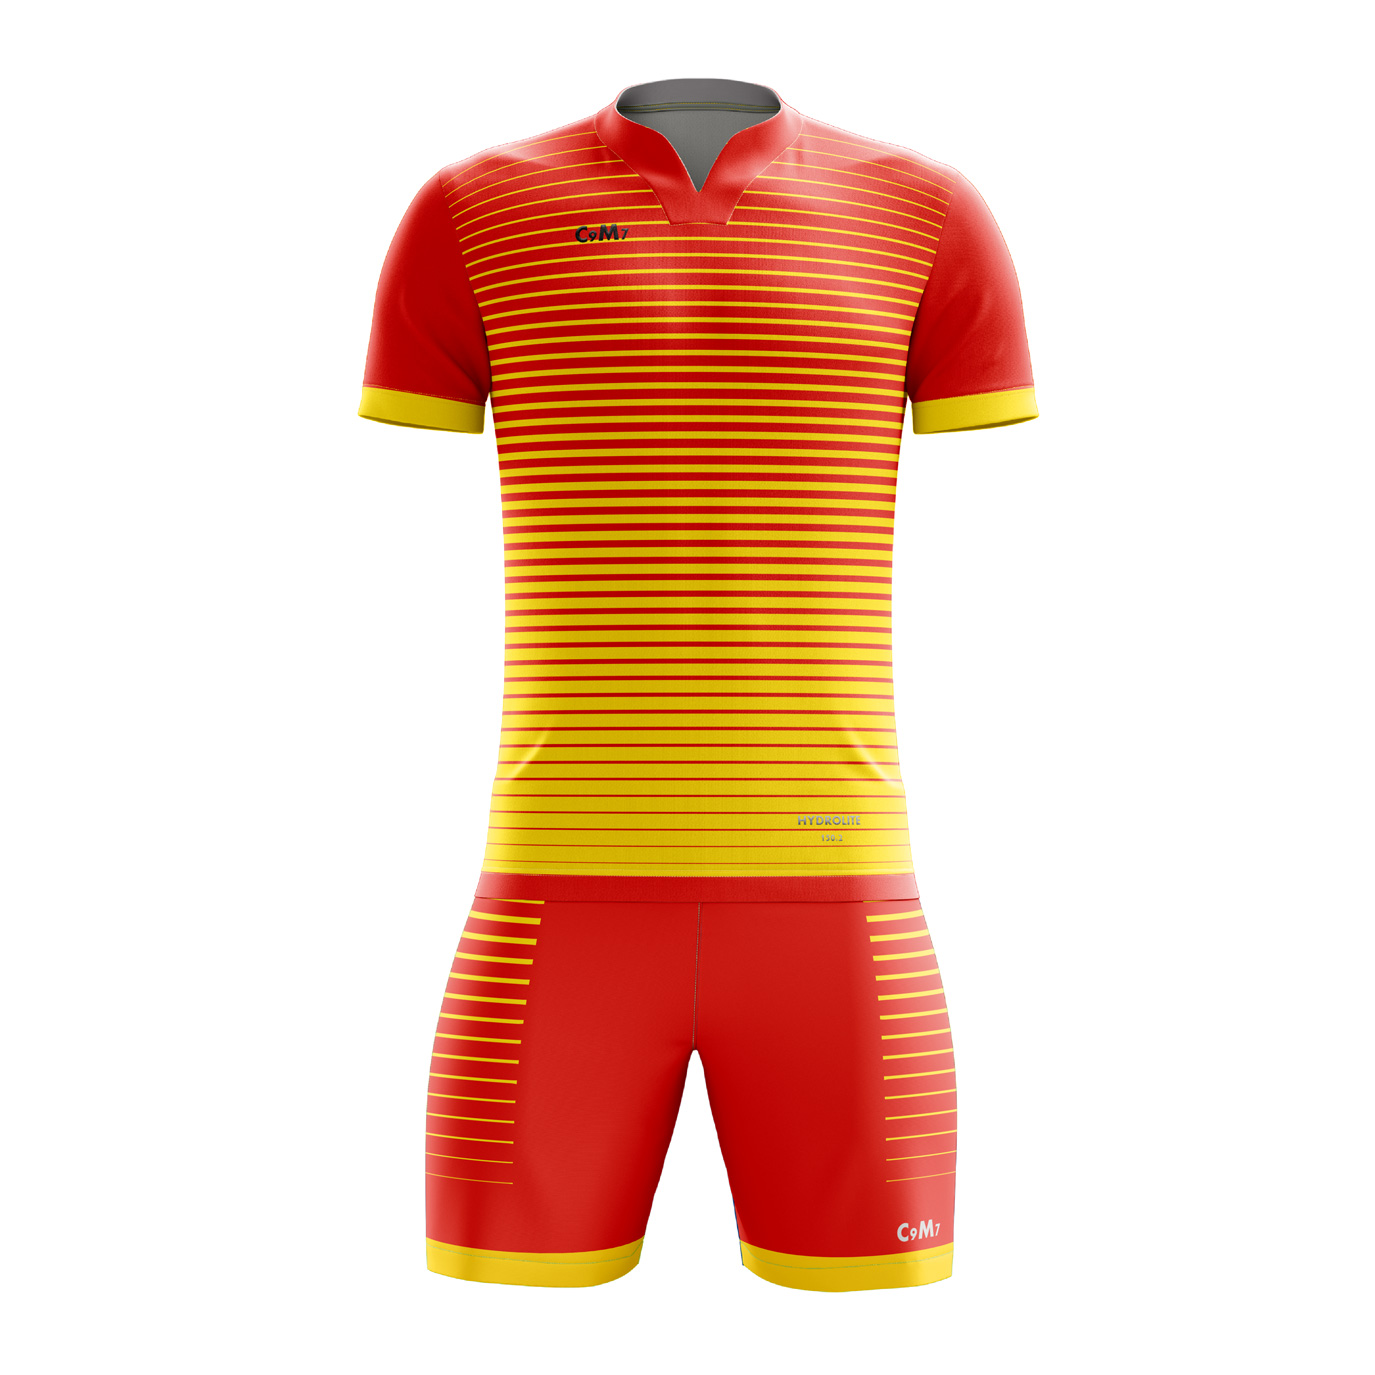 premium selection 9ef41 11c82 The Elastico 2018 Kids Football Jersey and Shorts Set